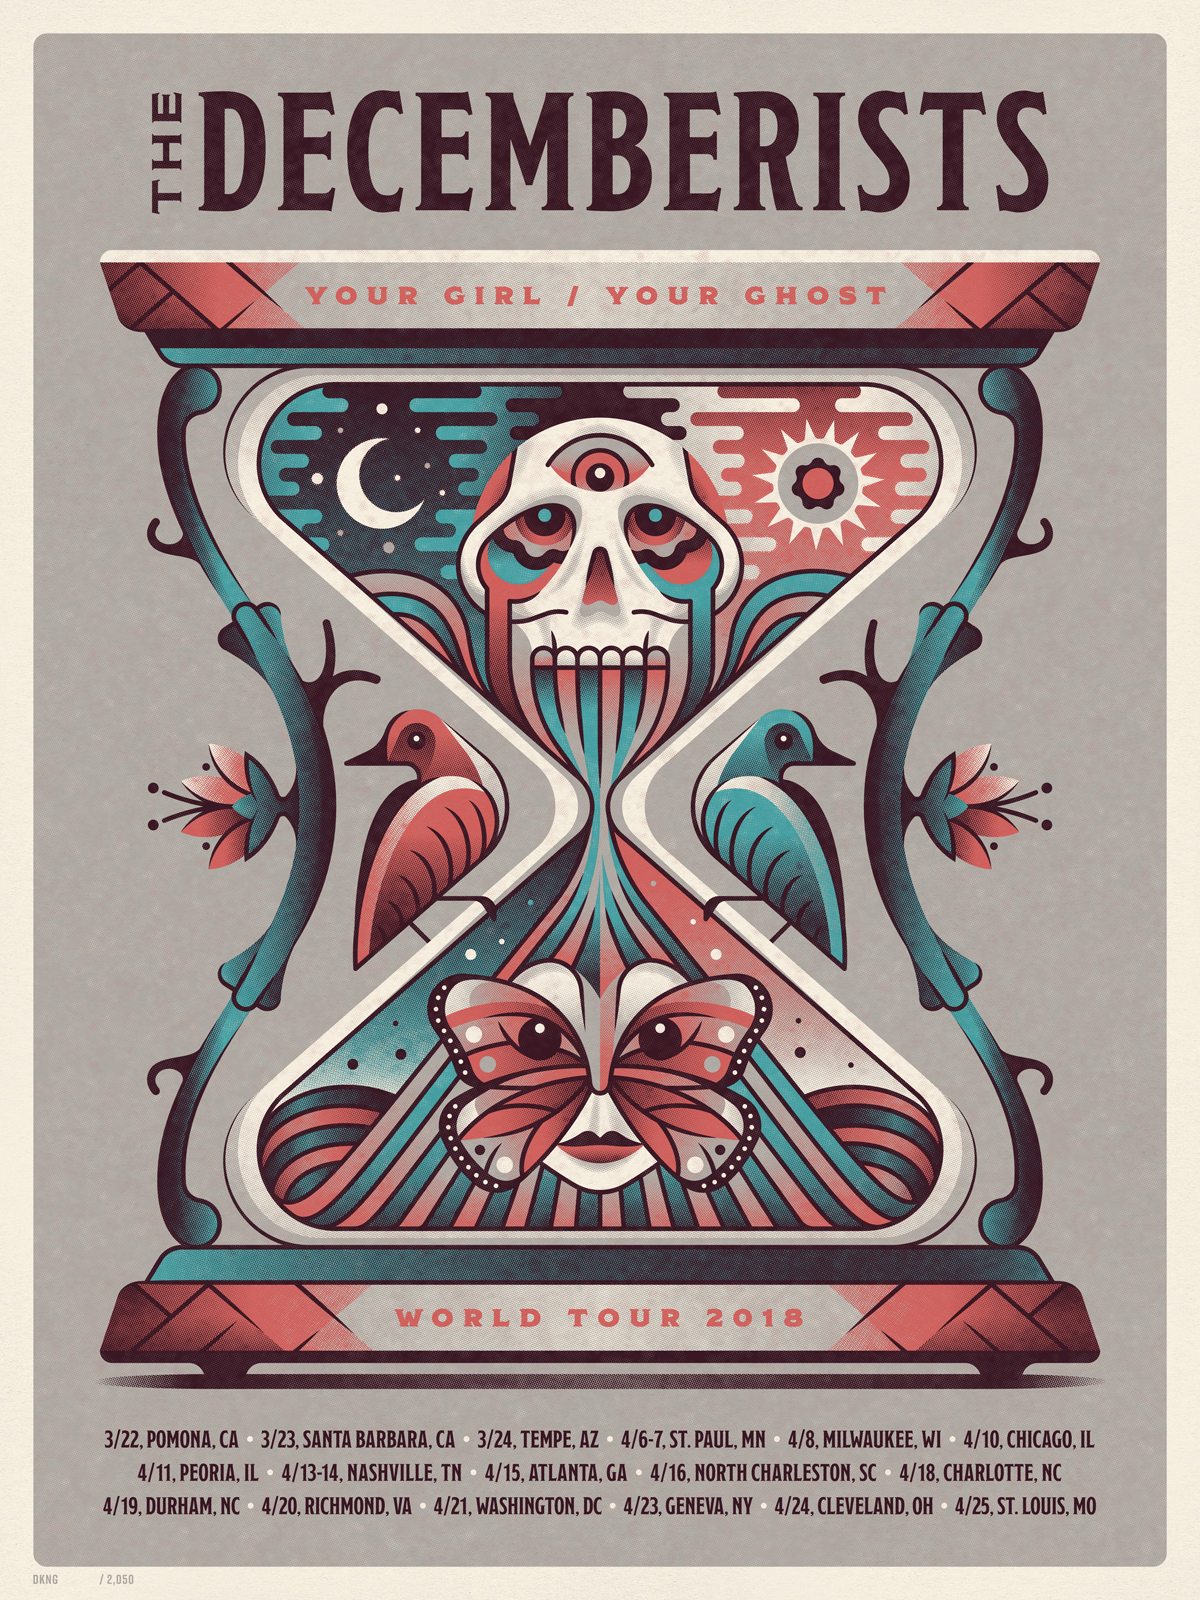 The+Decemberists+2018+Tour+Poster+by+DKNG-1.jpeg